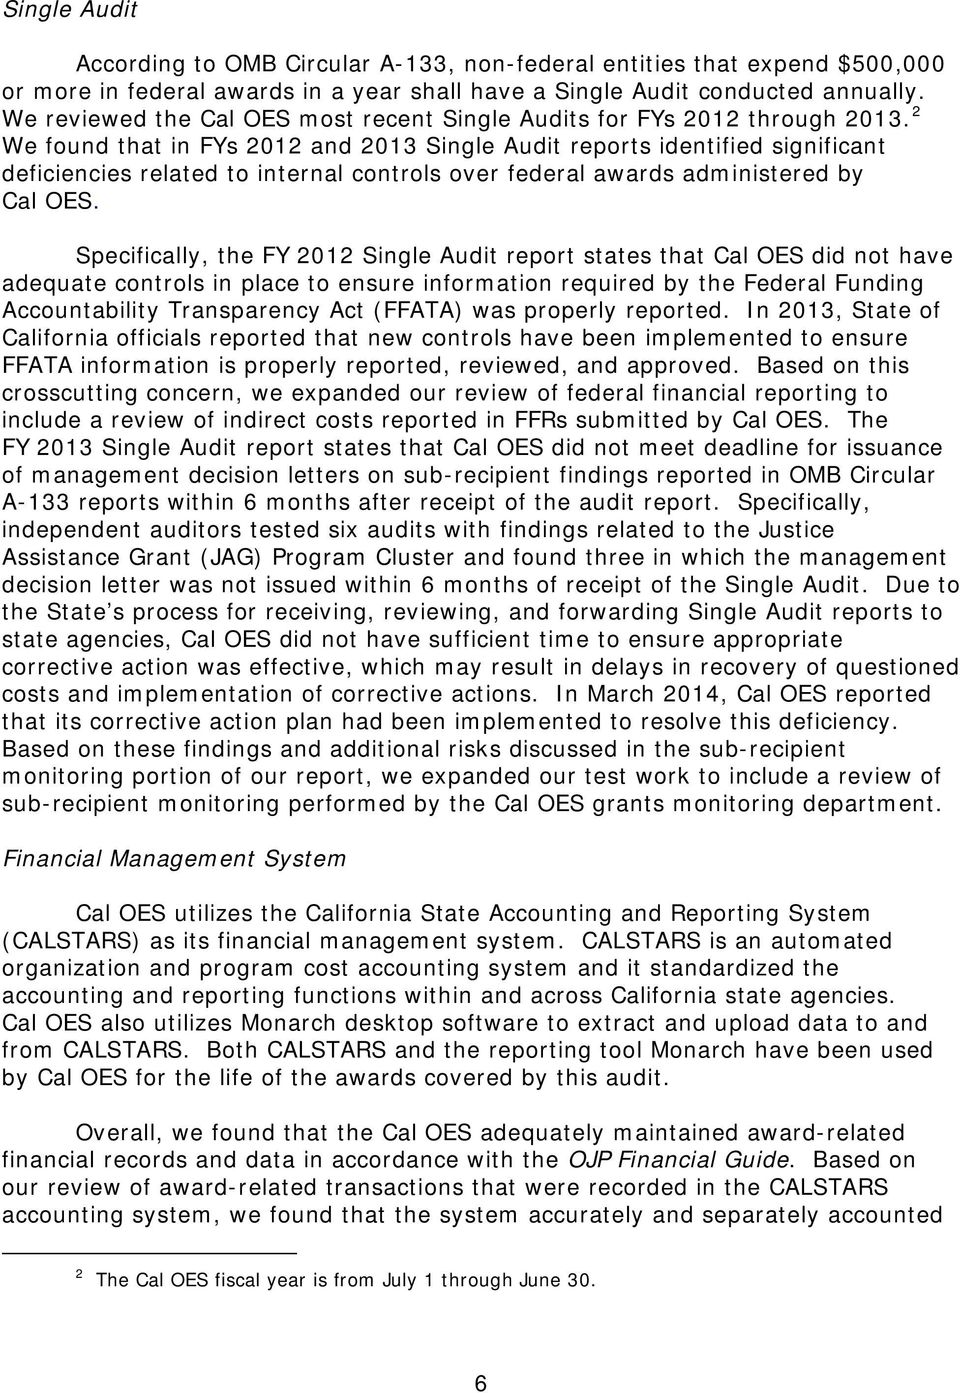 2 We found that in FYs 2012 and 2013 Single Audit reports identified significant deficiencies related to internal controls over federal awards administered by Cal OES.